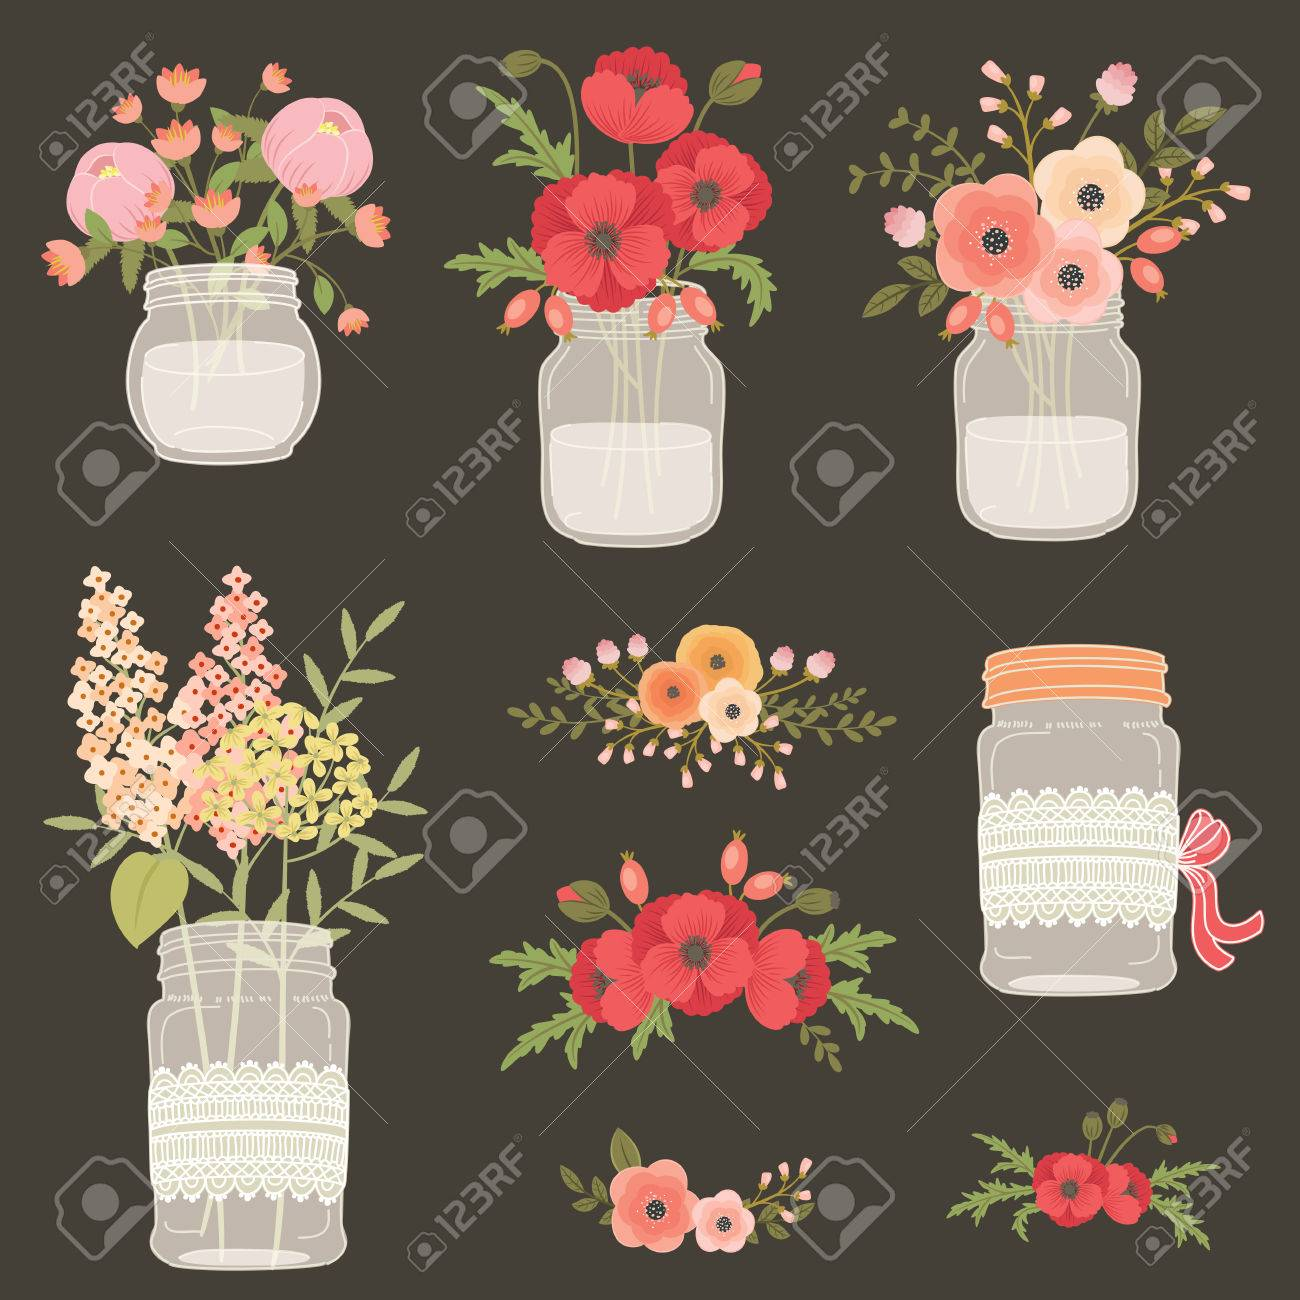 Flowers In Mason Jars Hand Drawn Illustration Poppy Flowers